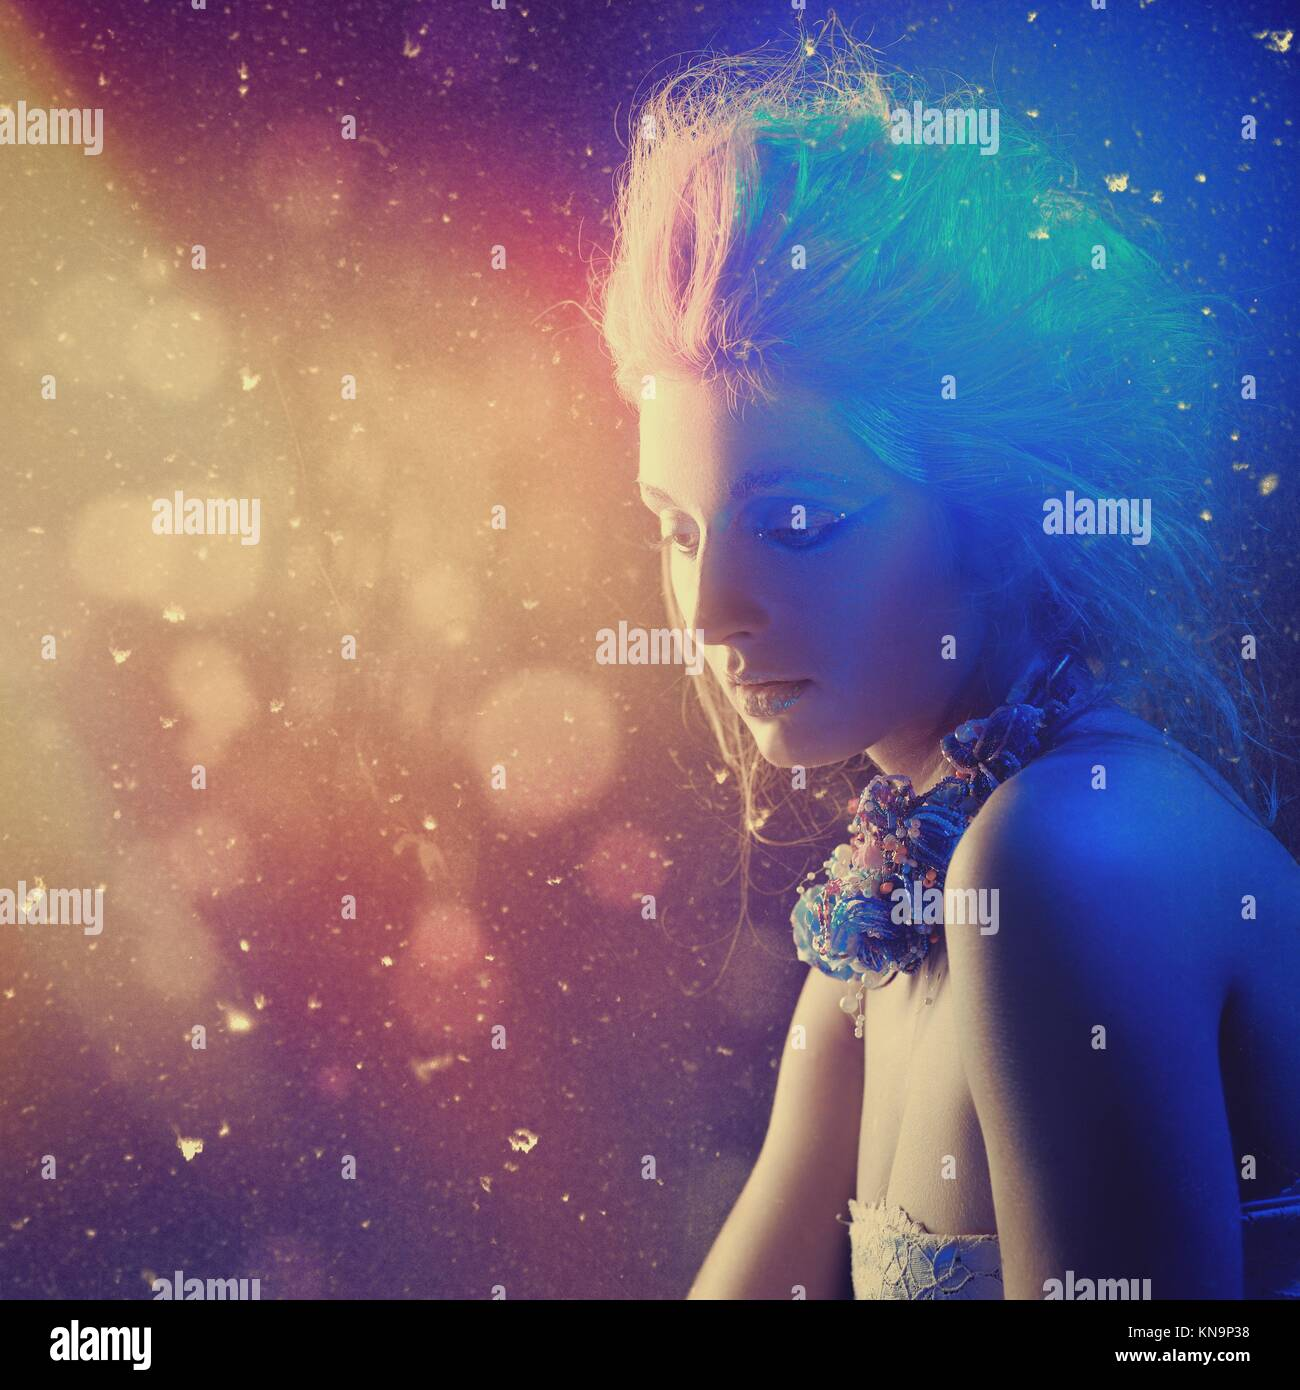 Northern Lights. Beauty female portrait with abstract light as backgrounds. - Stock Image